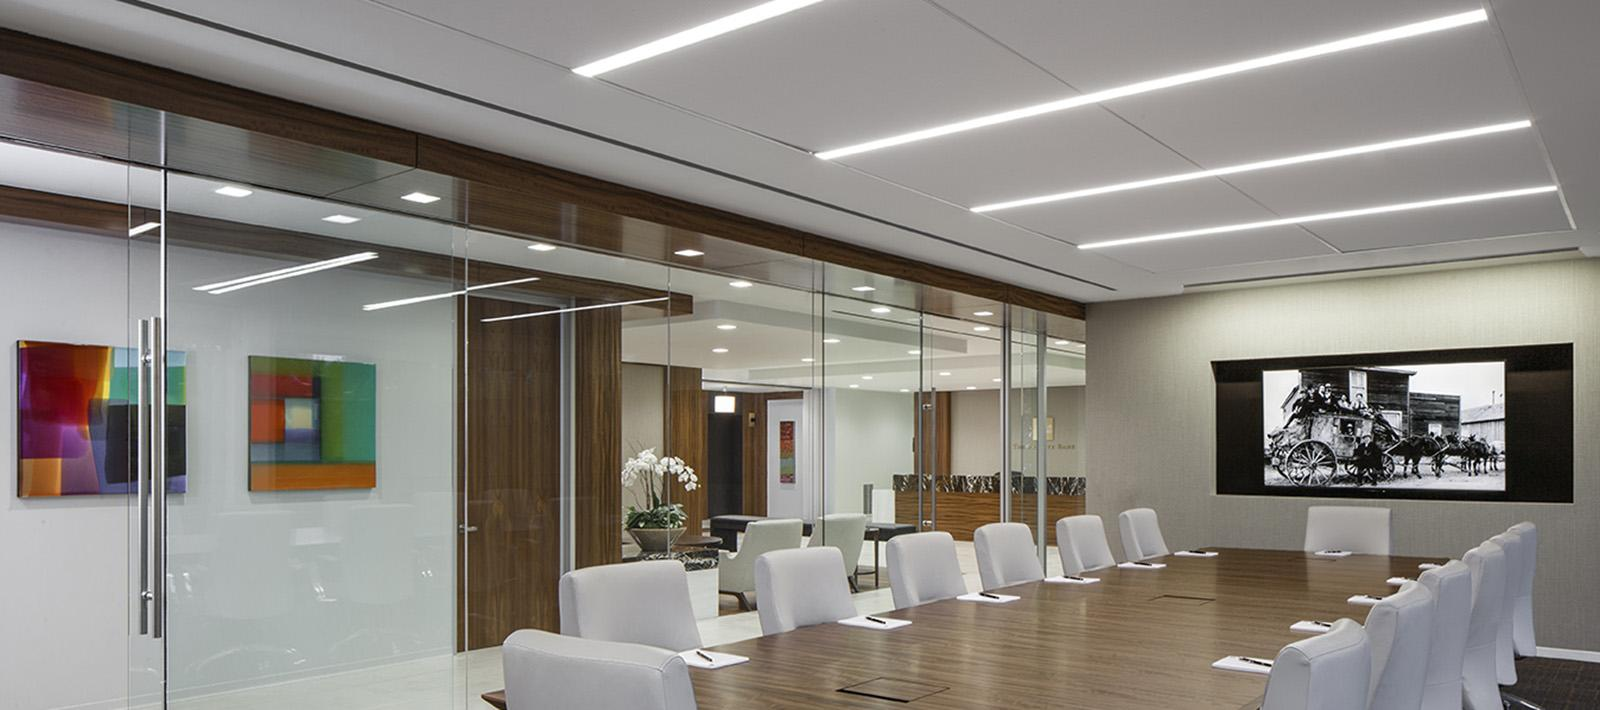 Focal Point Lights Confidential Financial Services Firm